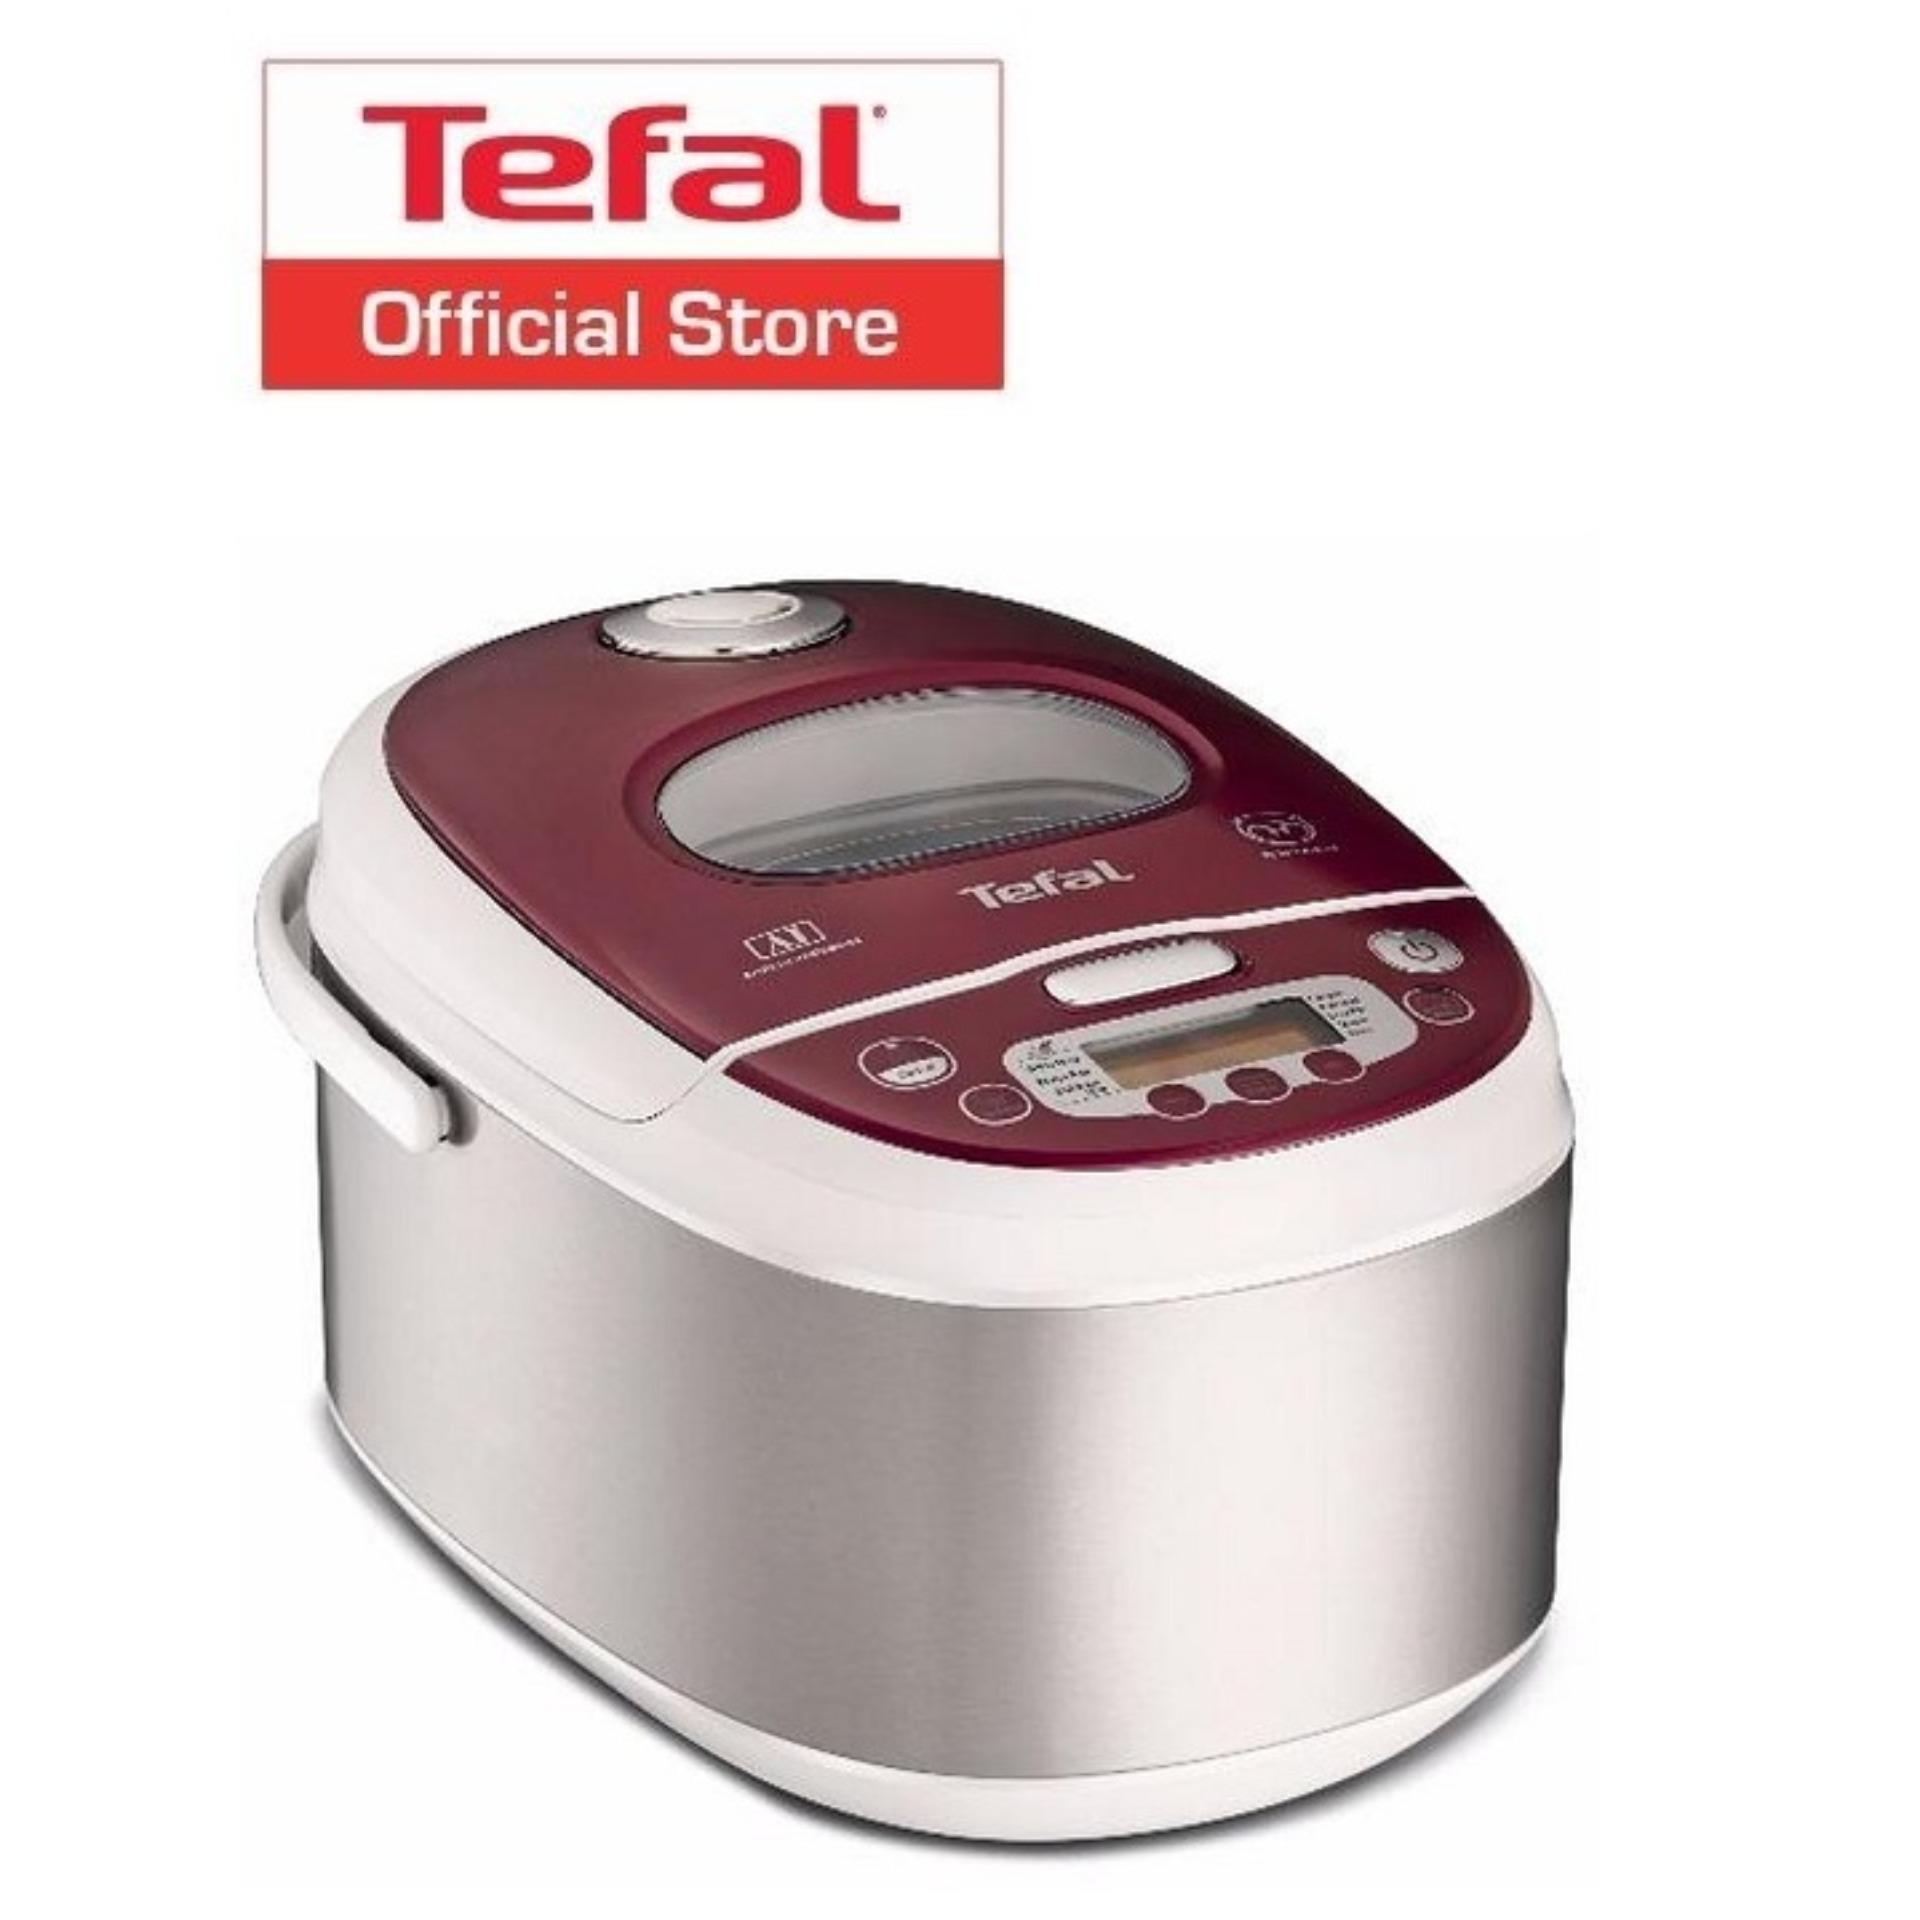 Deals For Tefal Advanced 10 Program Spherical Pot Fuzzy Logic Rice Cooker 1L Rk8115